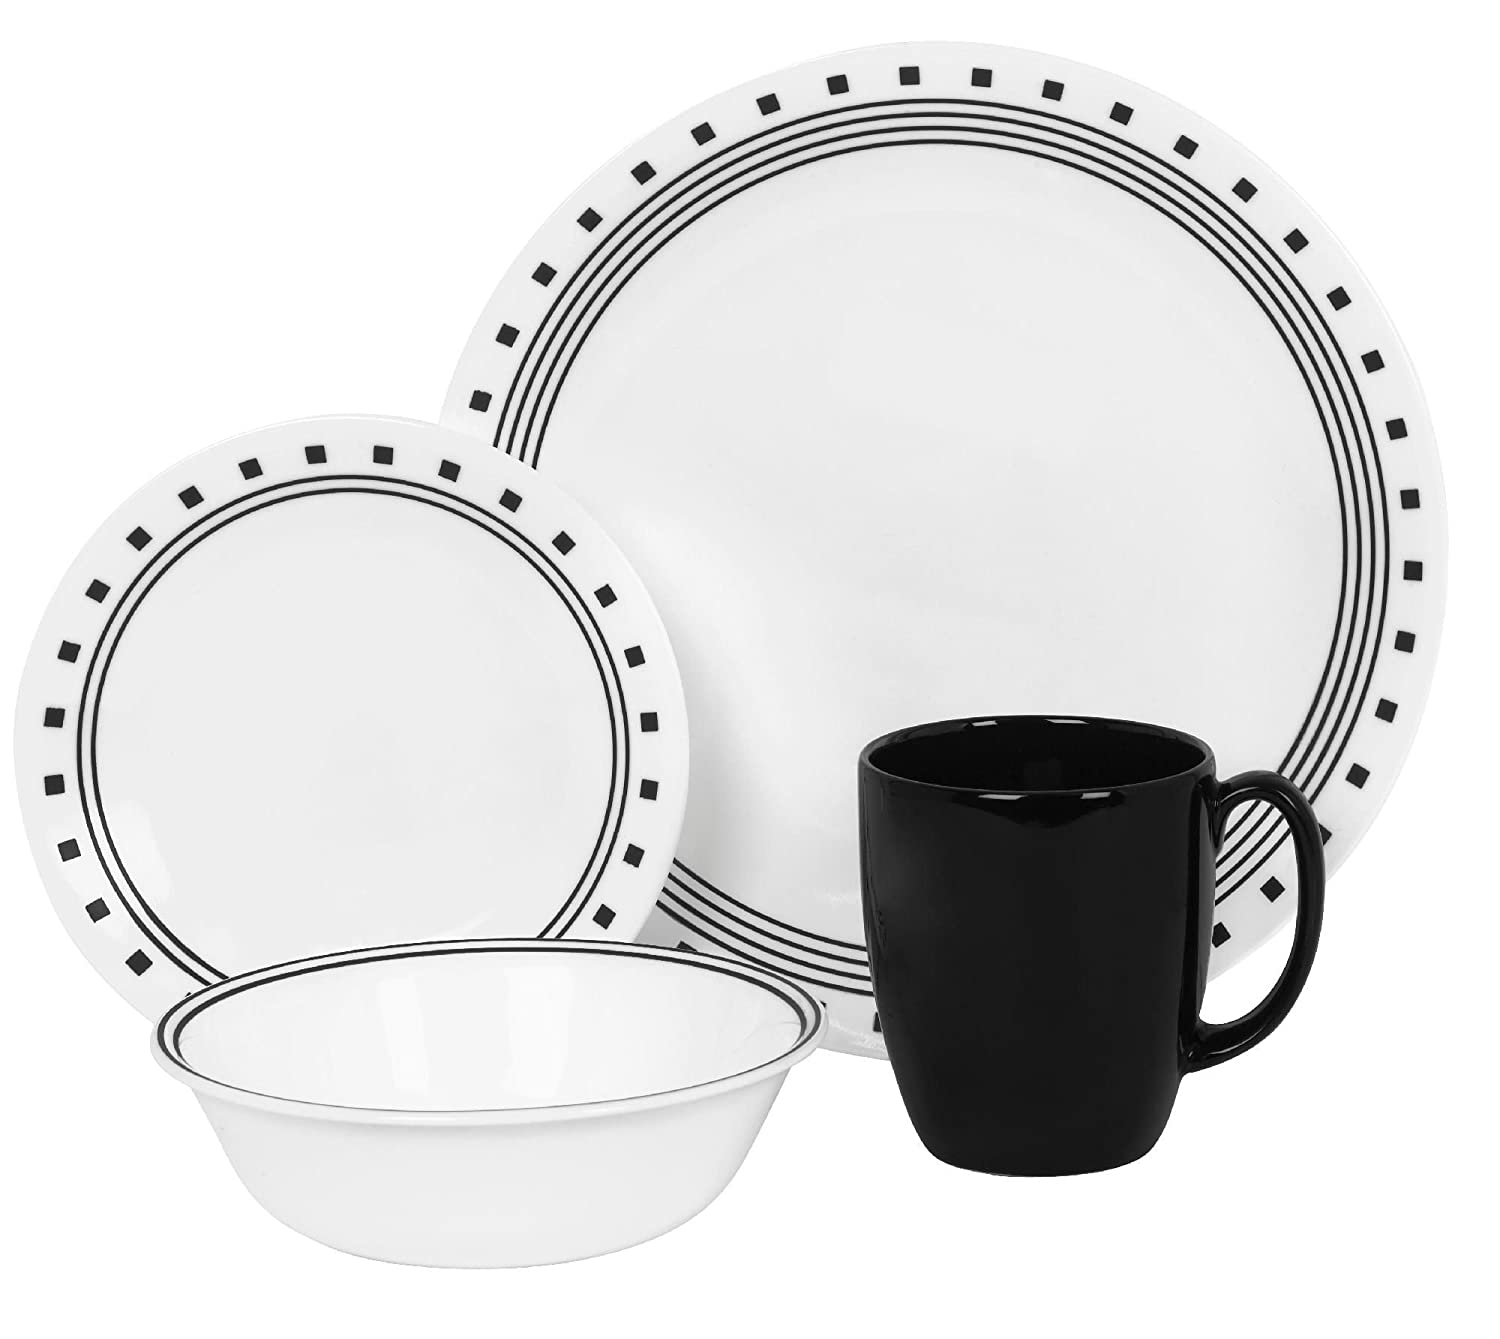 Corelle Livingware 16-Piece City Block Design Dinnerware, with Service for 4, Features Chip and Break Resistant Glass, is Microwave, Oven and Dishwasher Safe, with Bold and Bright Patterns, Scratch and Fade Resistant, with Stackable Design for Easy Storage